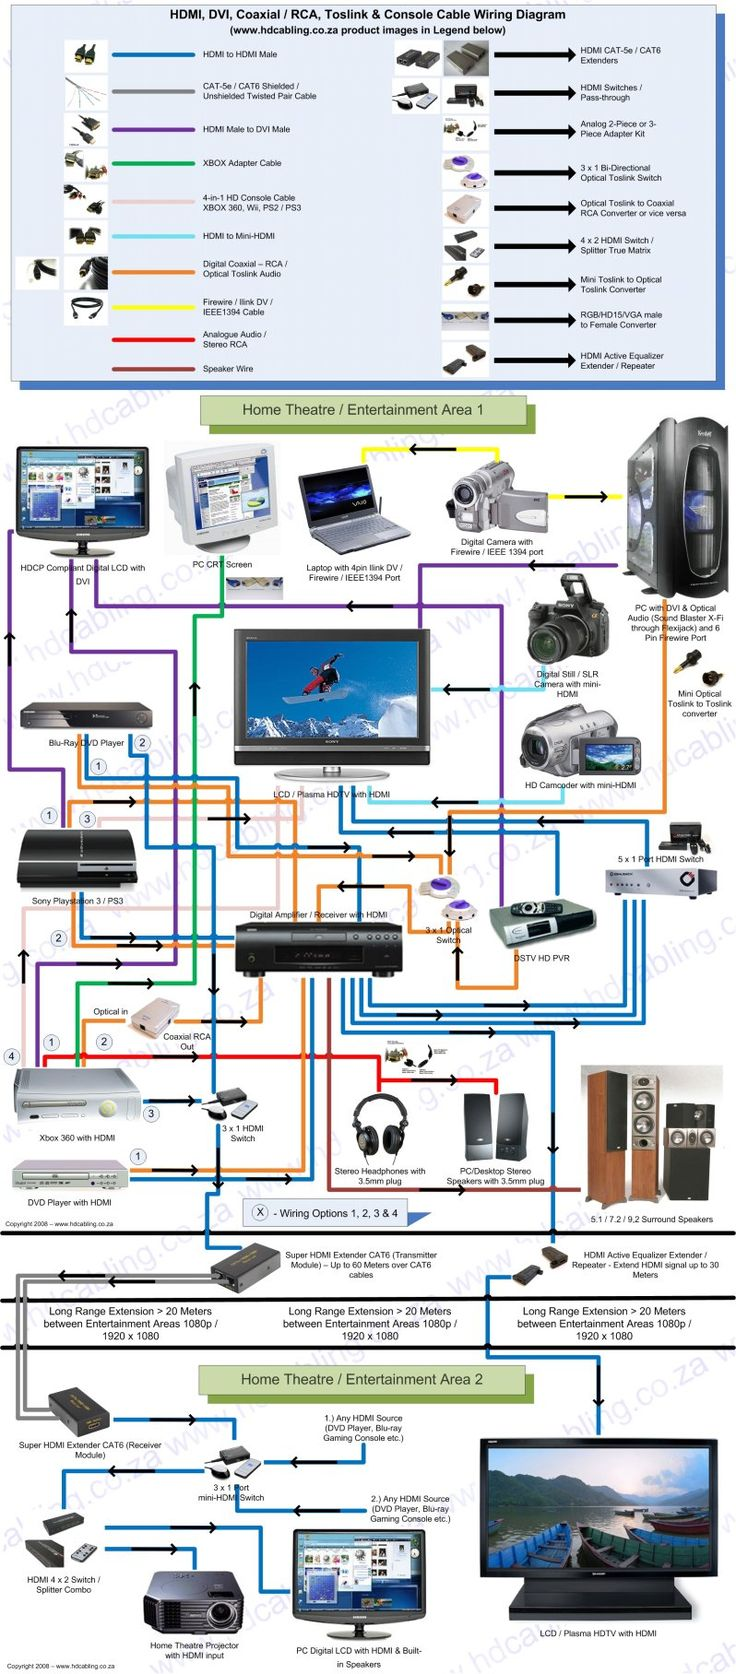 cat5 to hdmi wiring diagram cat5 image wiring diagram hdmi home wiring diagram smart hdmi auto wiring diagram schematic on cat5 to hdmi wiring diagram